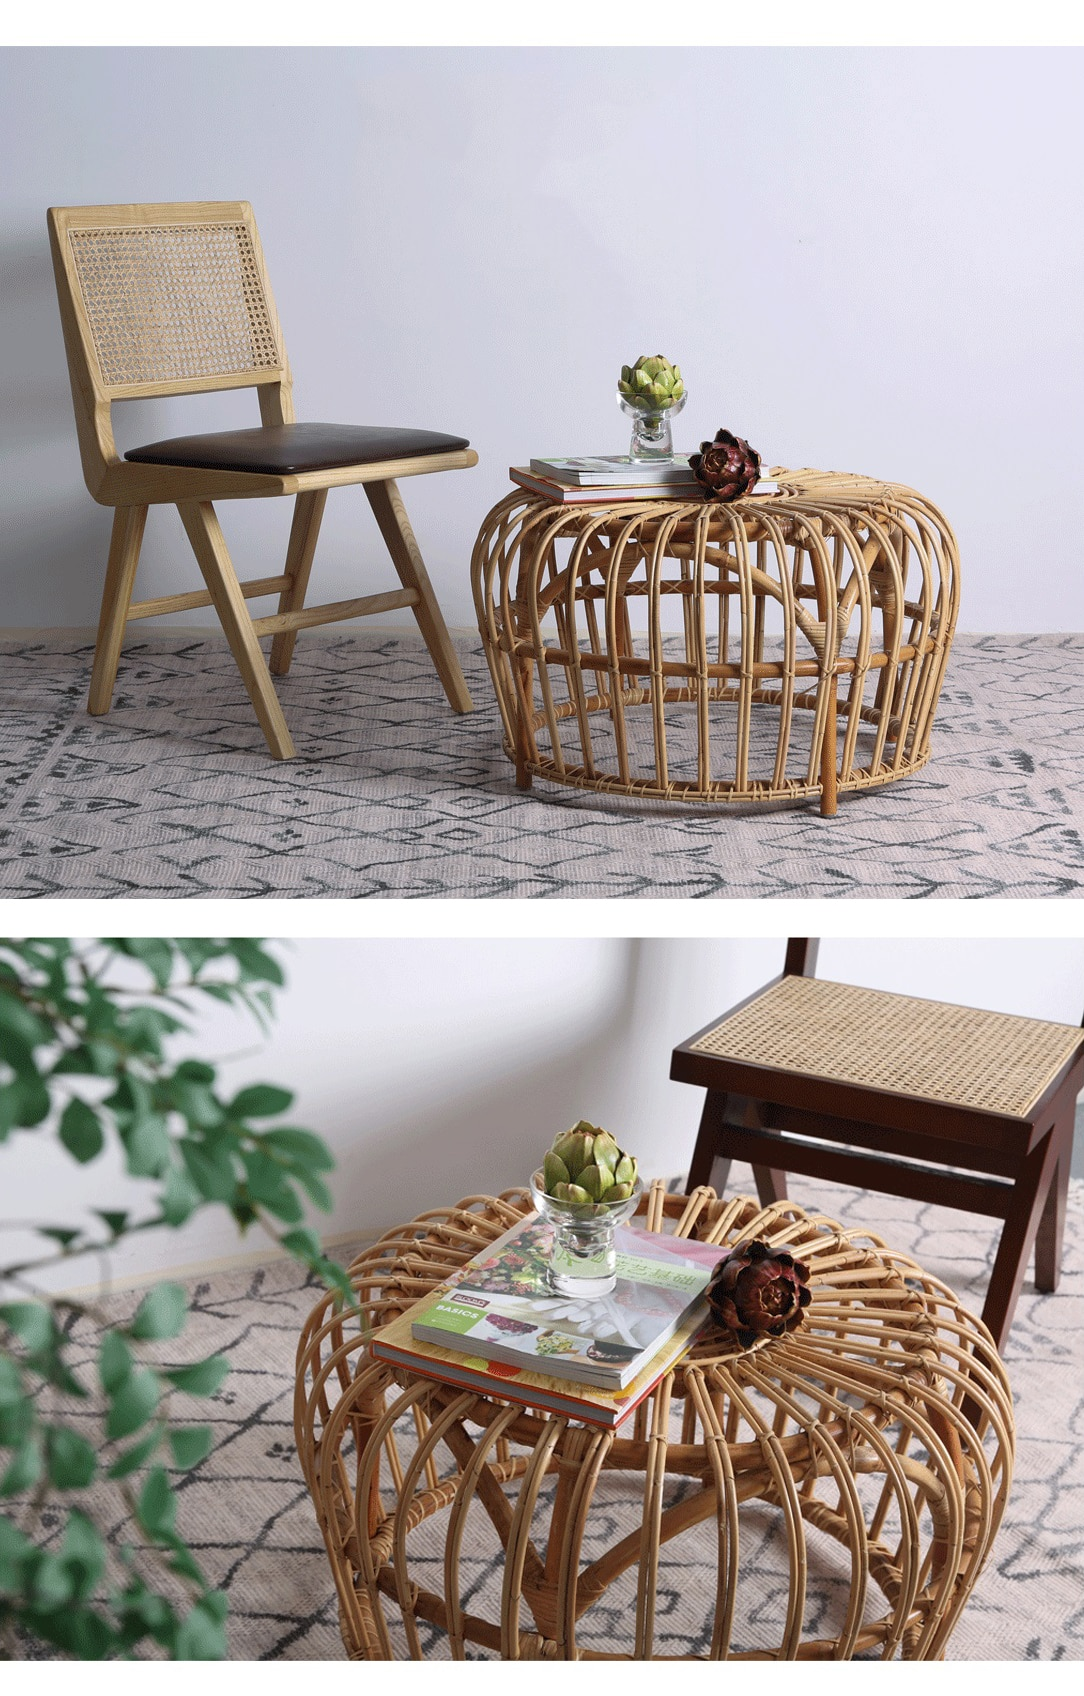 Rattan furniture hand-woven casual coffee table for living room